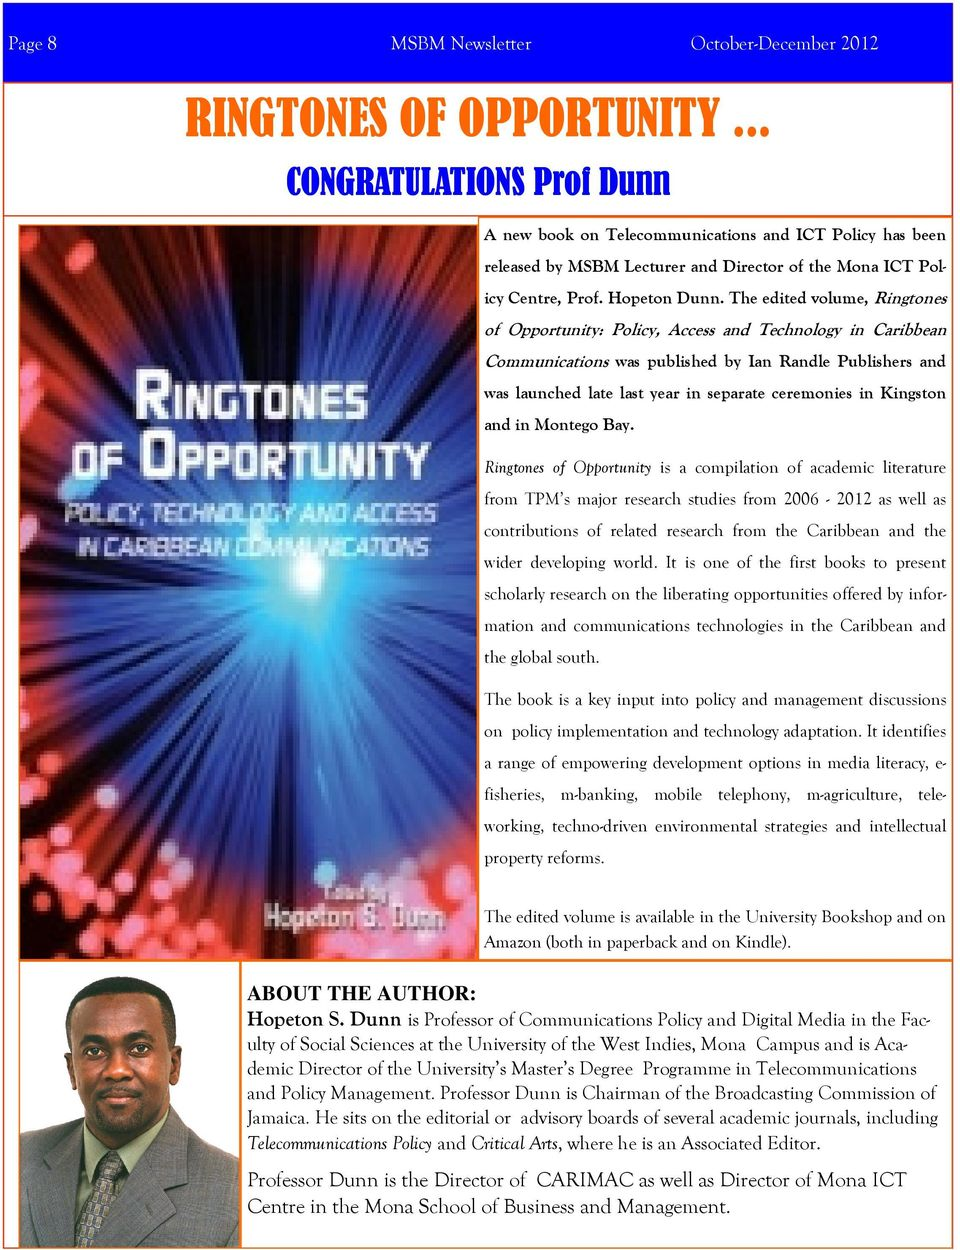 The edited volume, Ringtones of Opportunity: Policy, Access and Technology in Caribbean Communications was published by Ian Randle Publishers and was launched late last year in separate ceremonies in